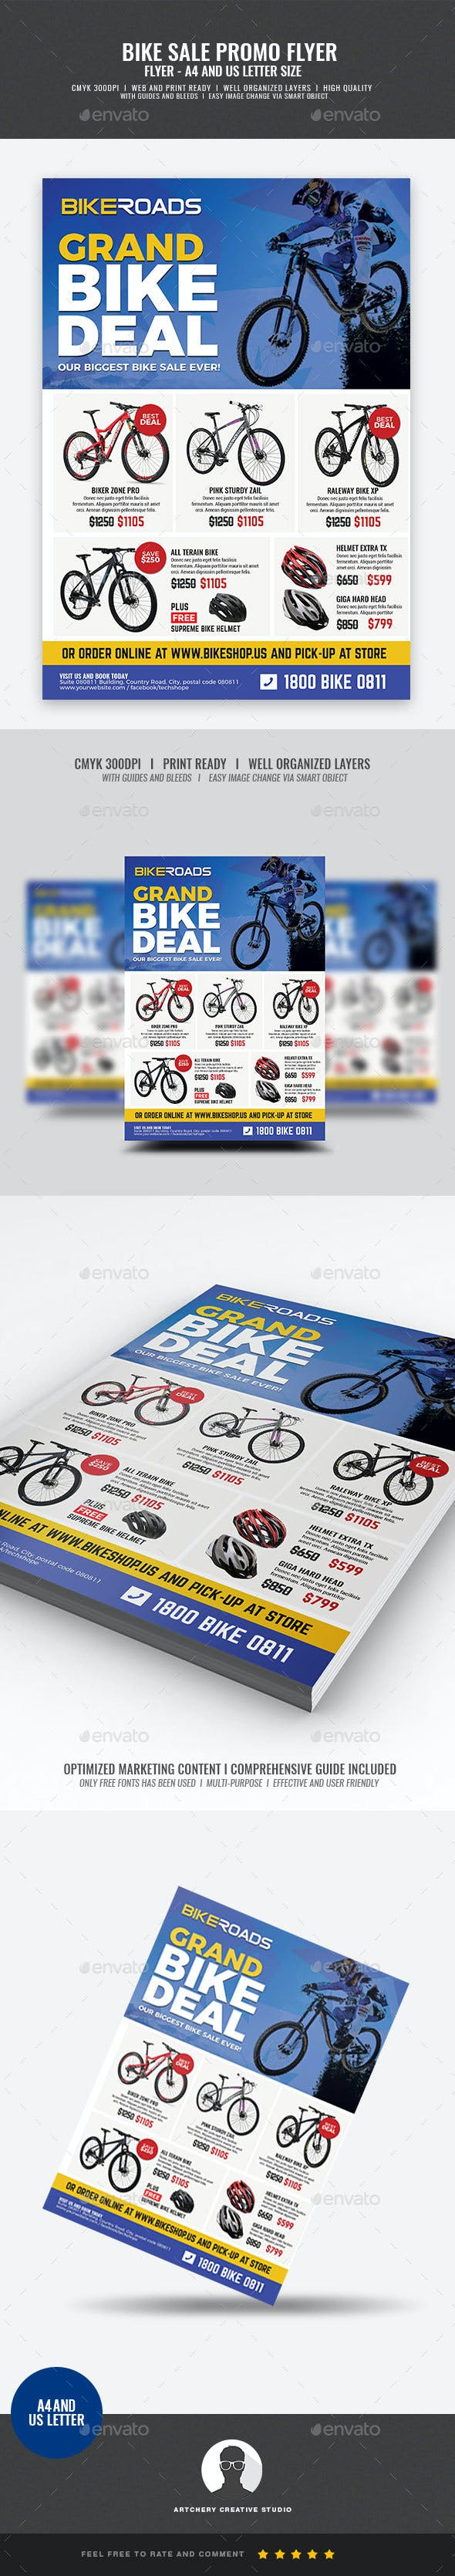 bicycle sale promo flyer by artchery graphicriver